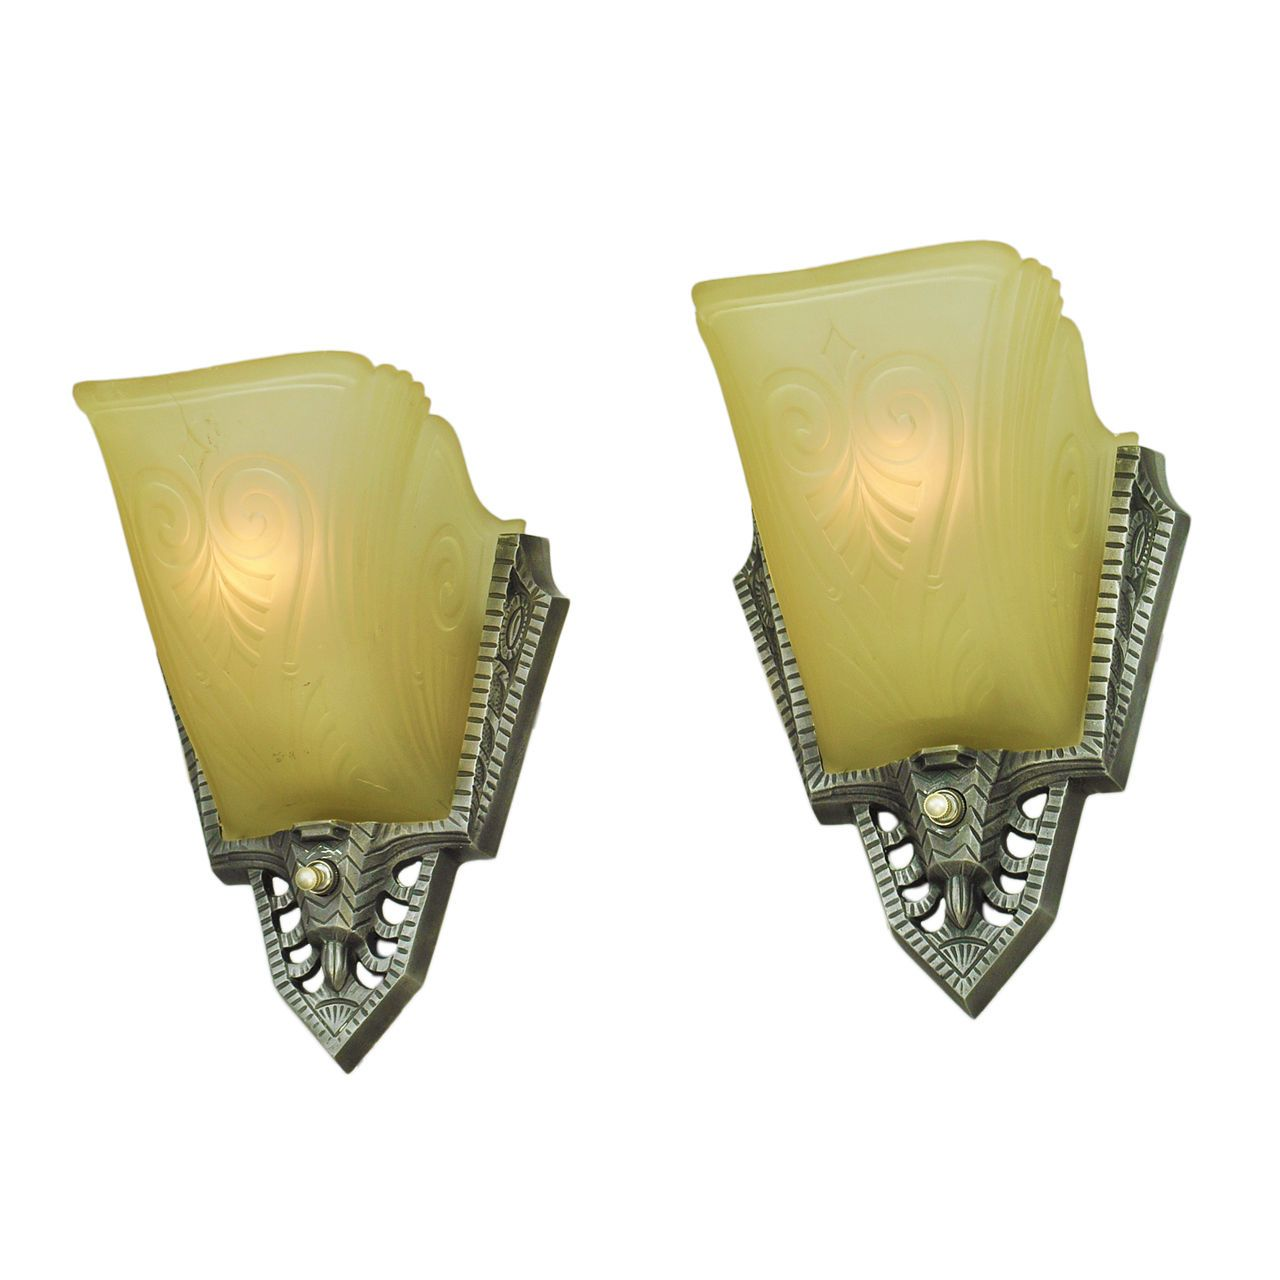 Art Deco Antique Wall Sconces Pair of 1930s Slip Shade Lights by ...